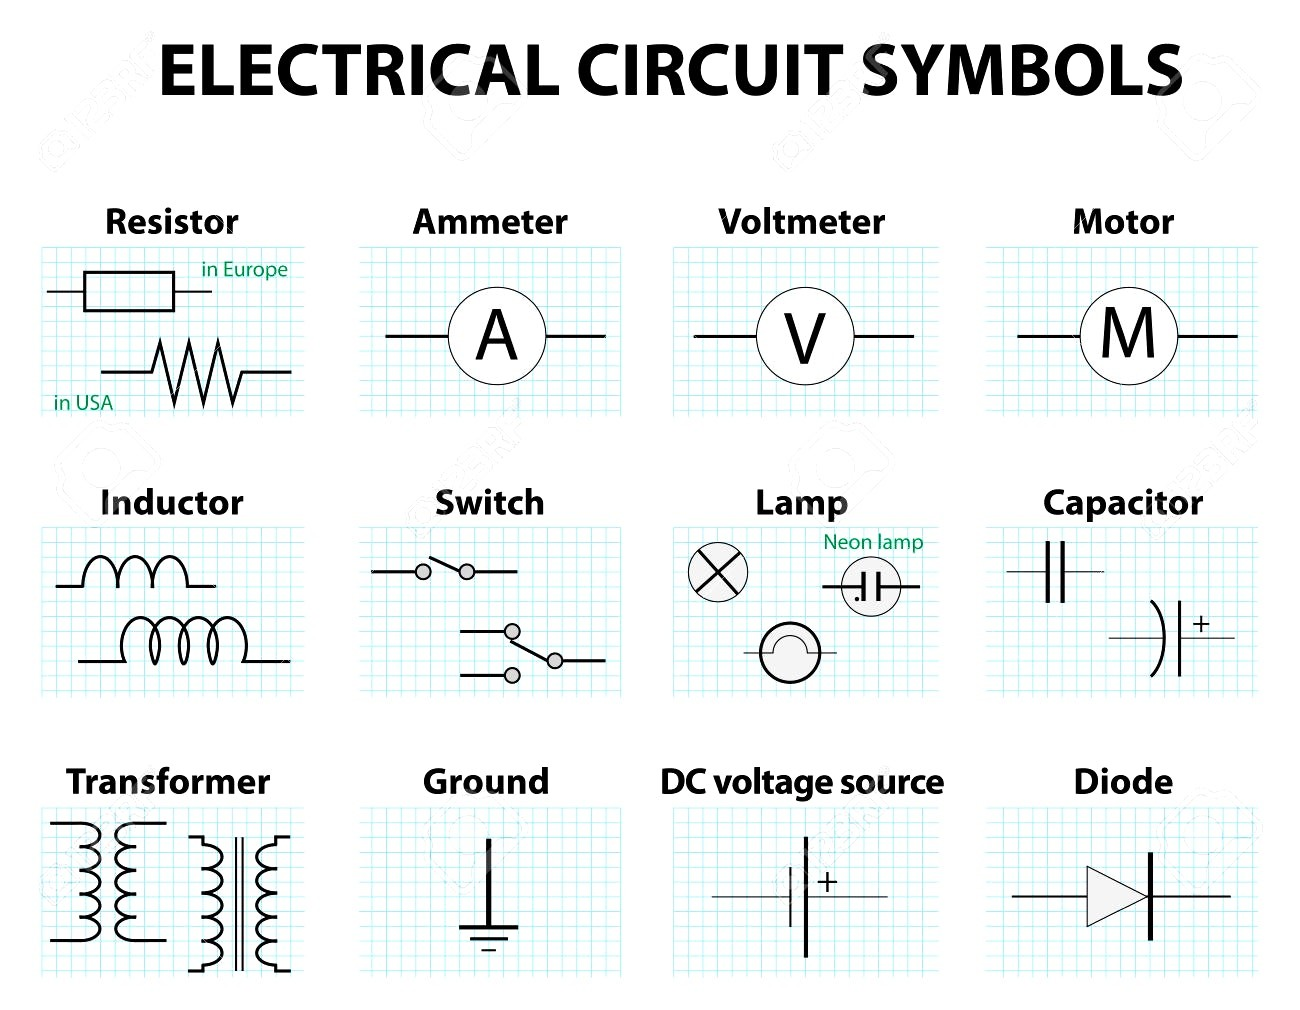 Schematic symbol for heater wire center awesome heater symbol wiring diagram pictures simple wiring rh littleforestgirl net electrical schematic symbol for heater ccuart Gallery